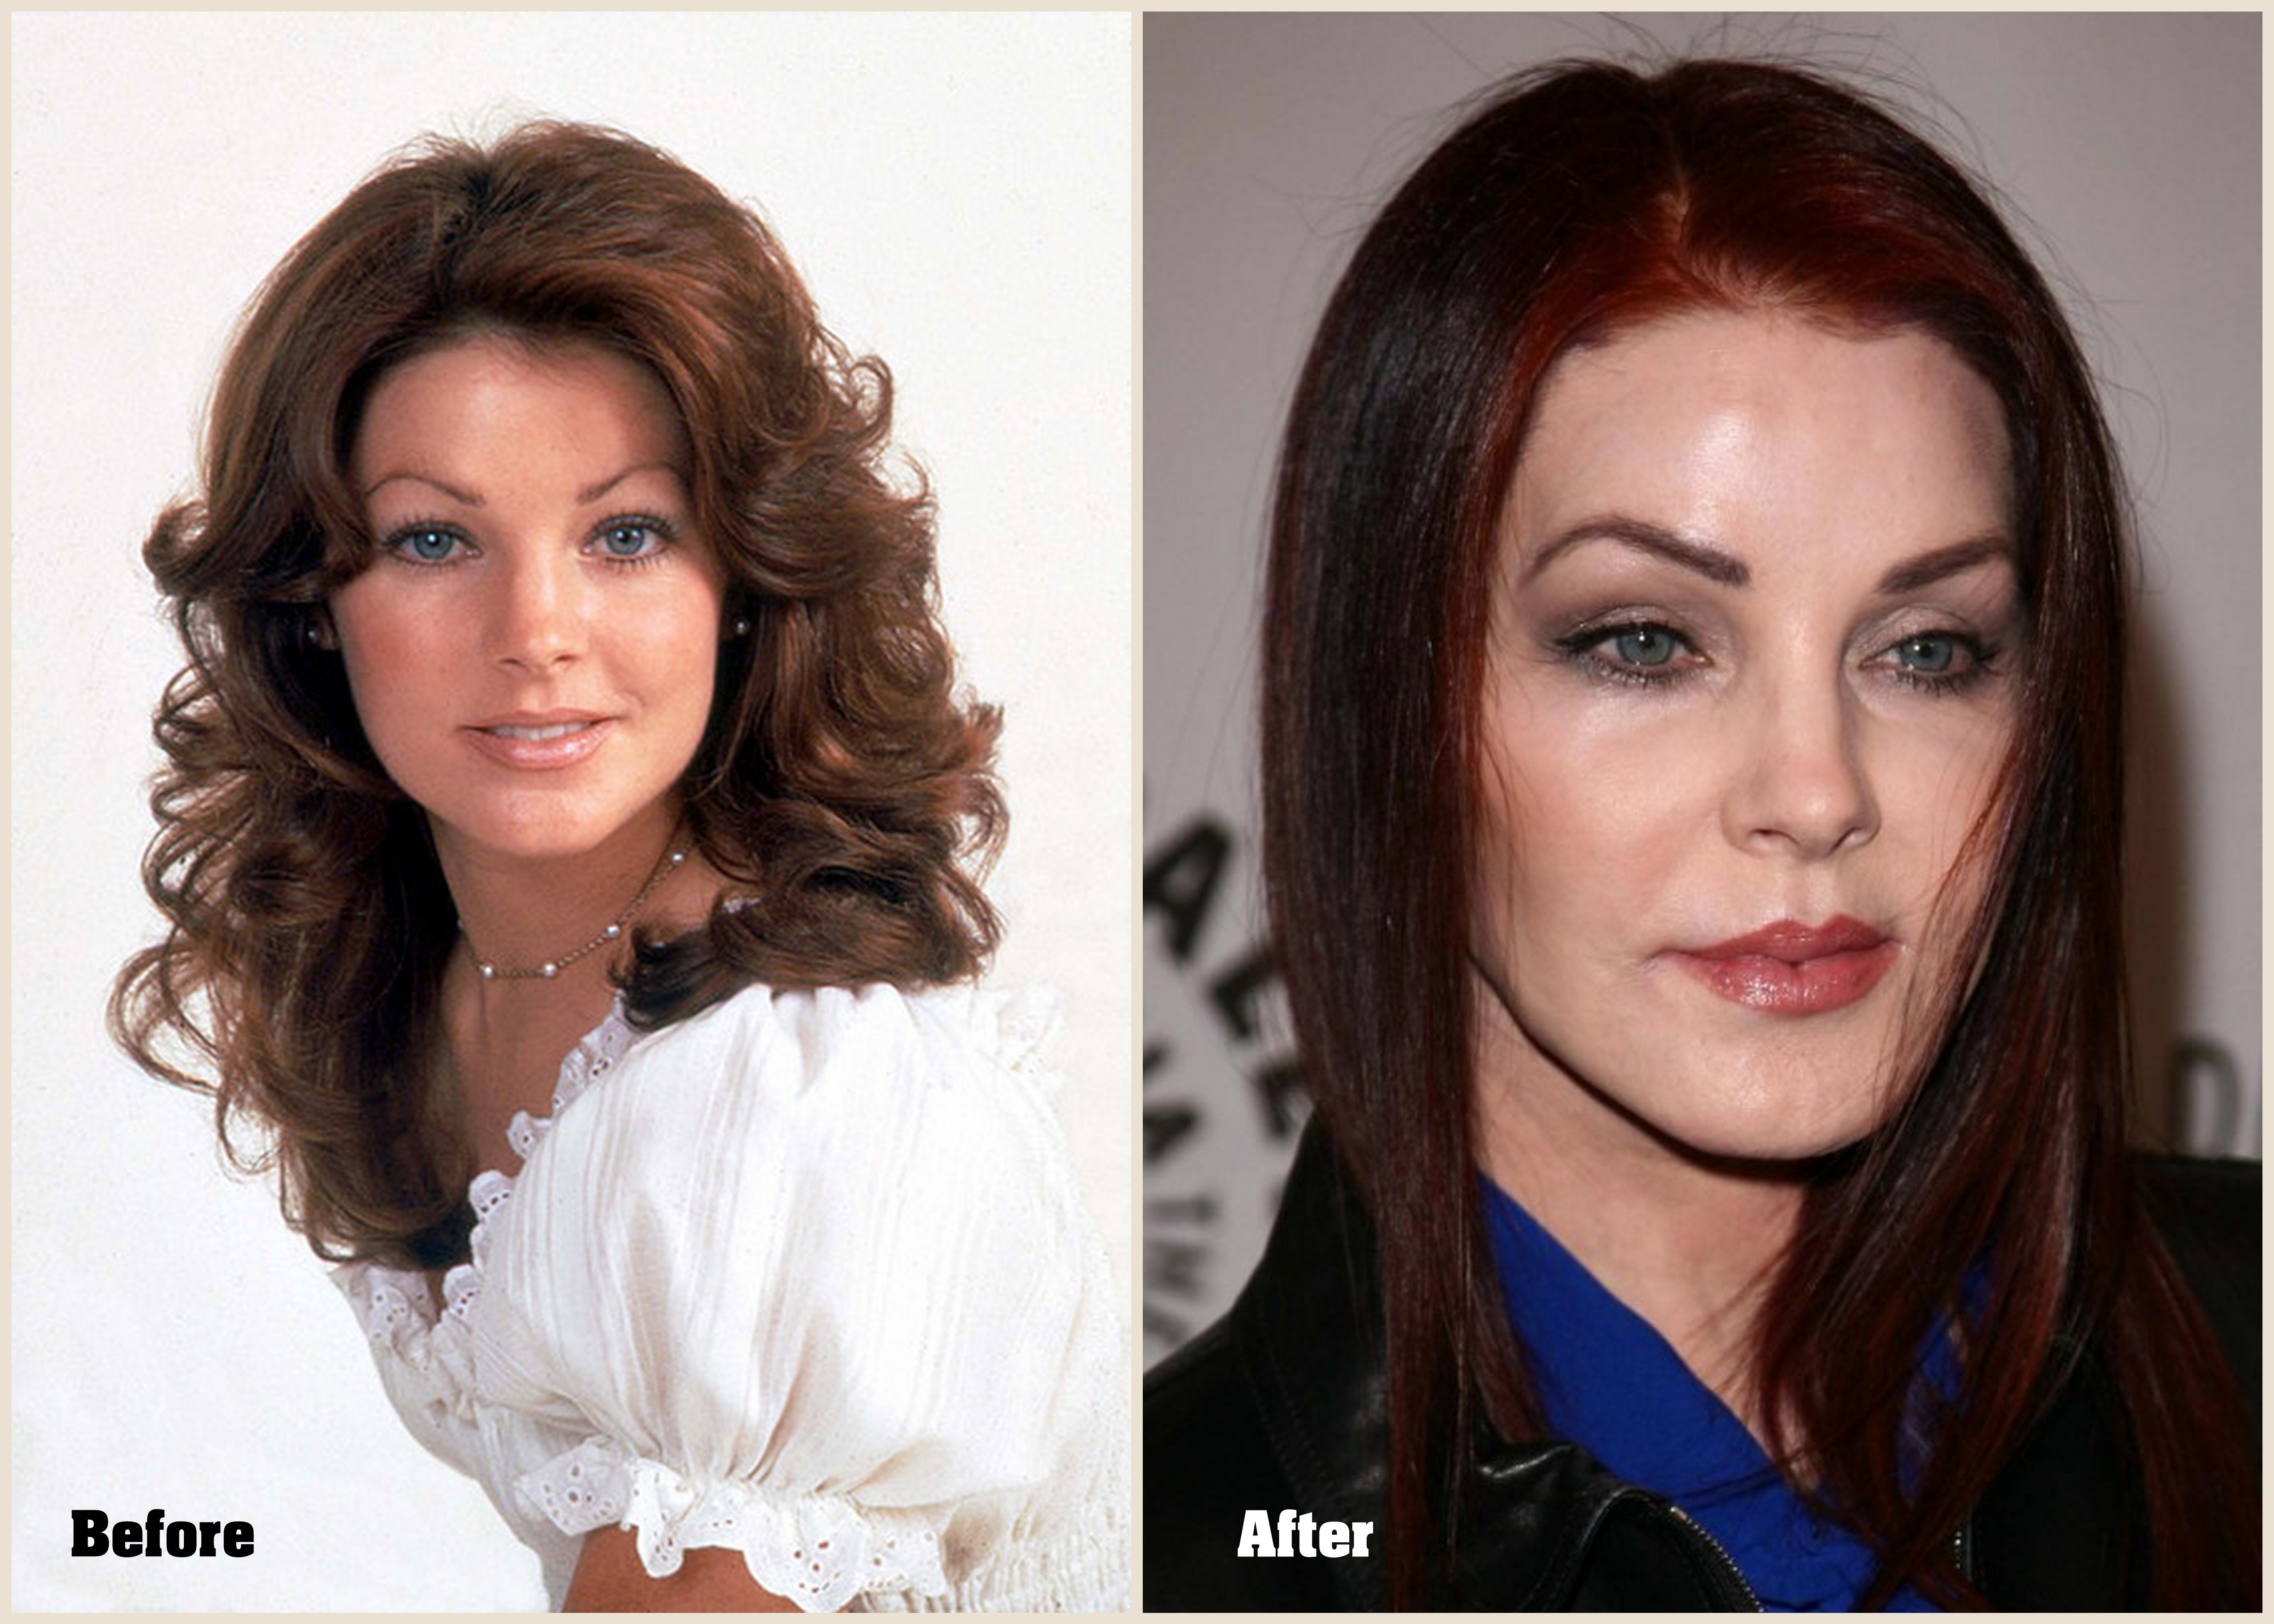 Priscilla Presley Plastic Surgery Before And After Photos